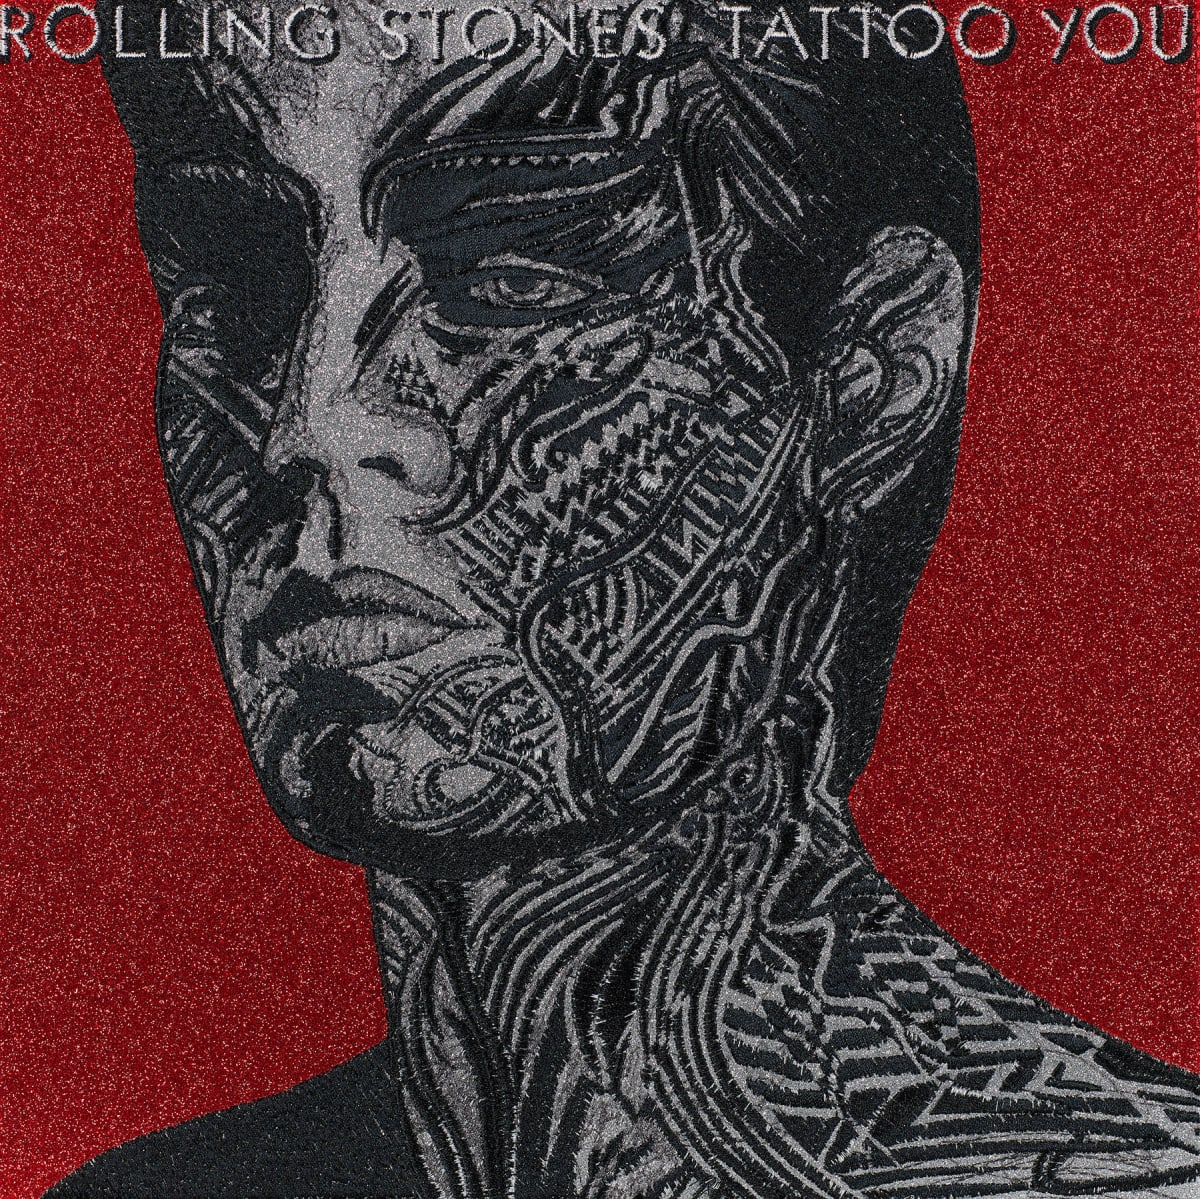 Stephen Wilson, Tattoo You, Rolling Stones , 2019